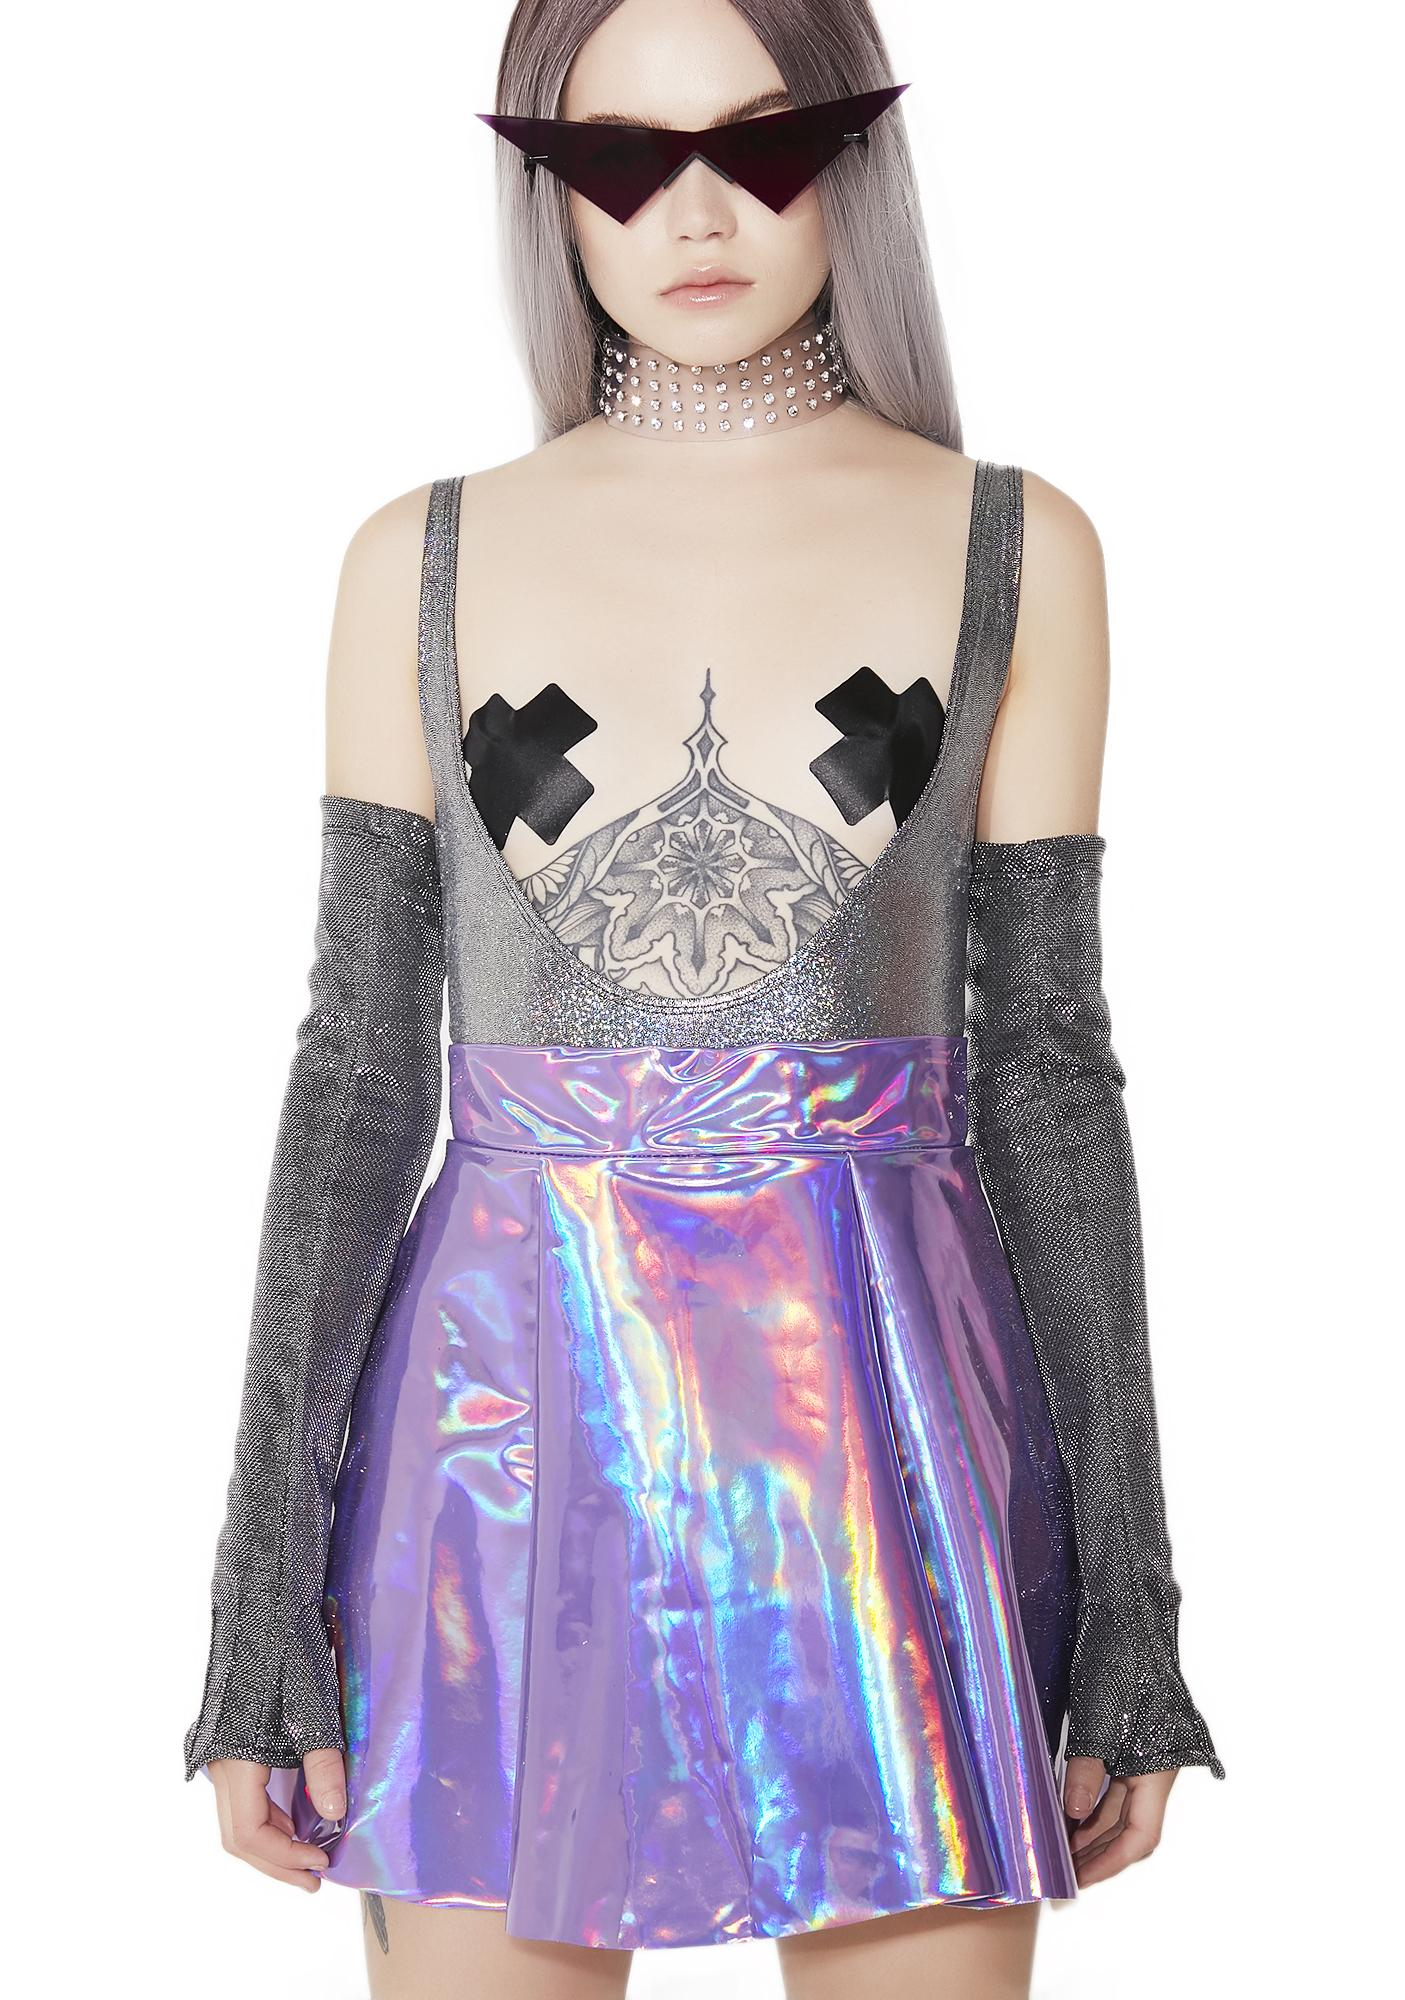 Cosmic Unicornz Holographic Skirt